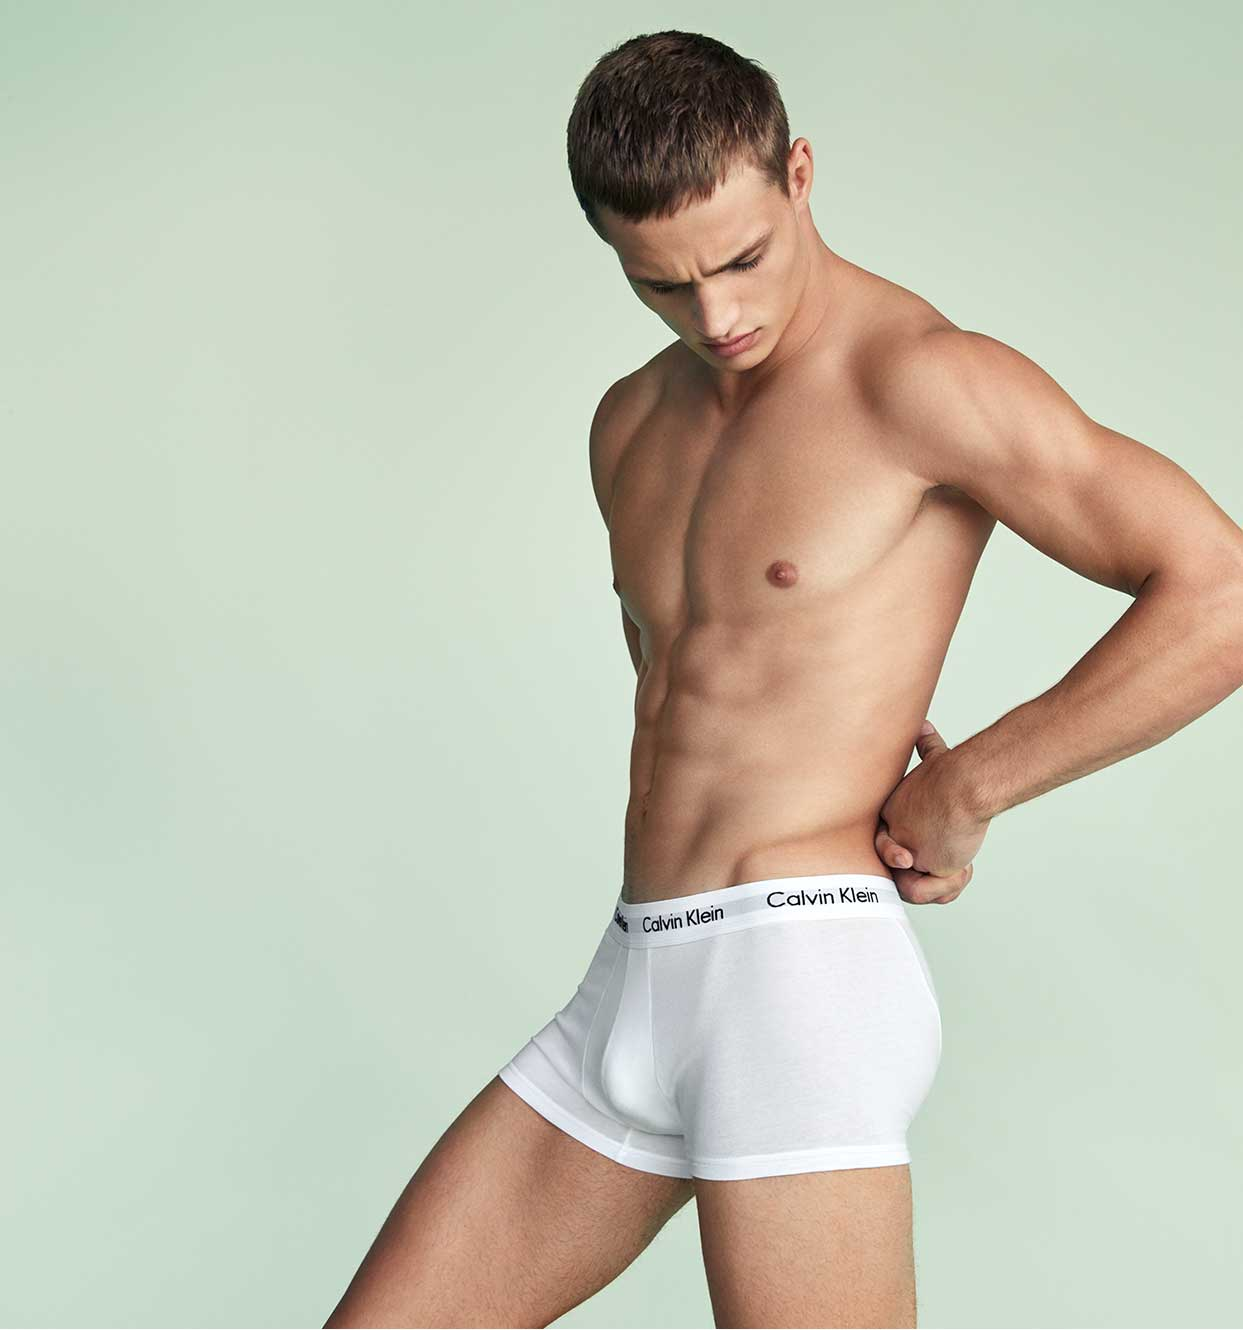 Calvin Klein Underwear Model